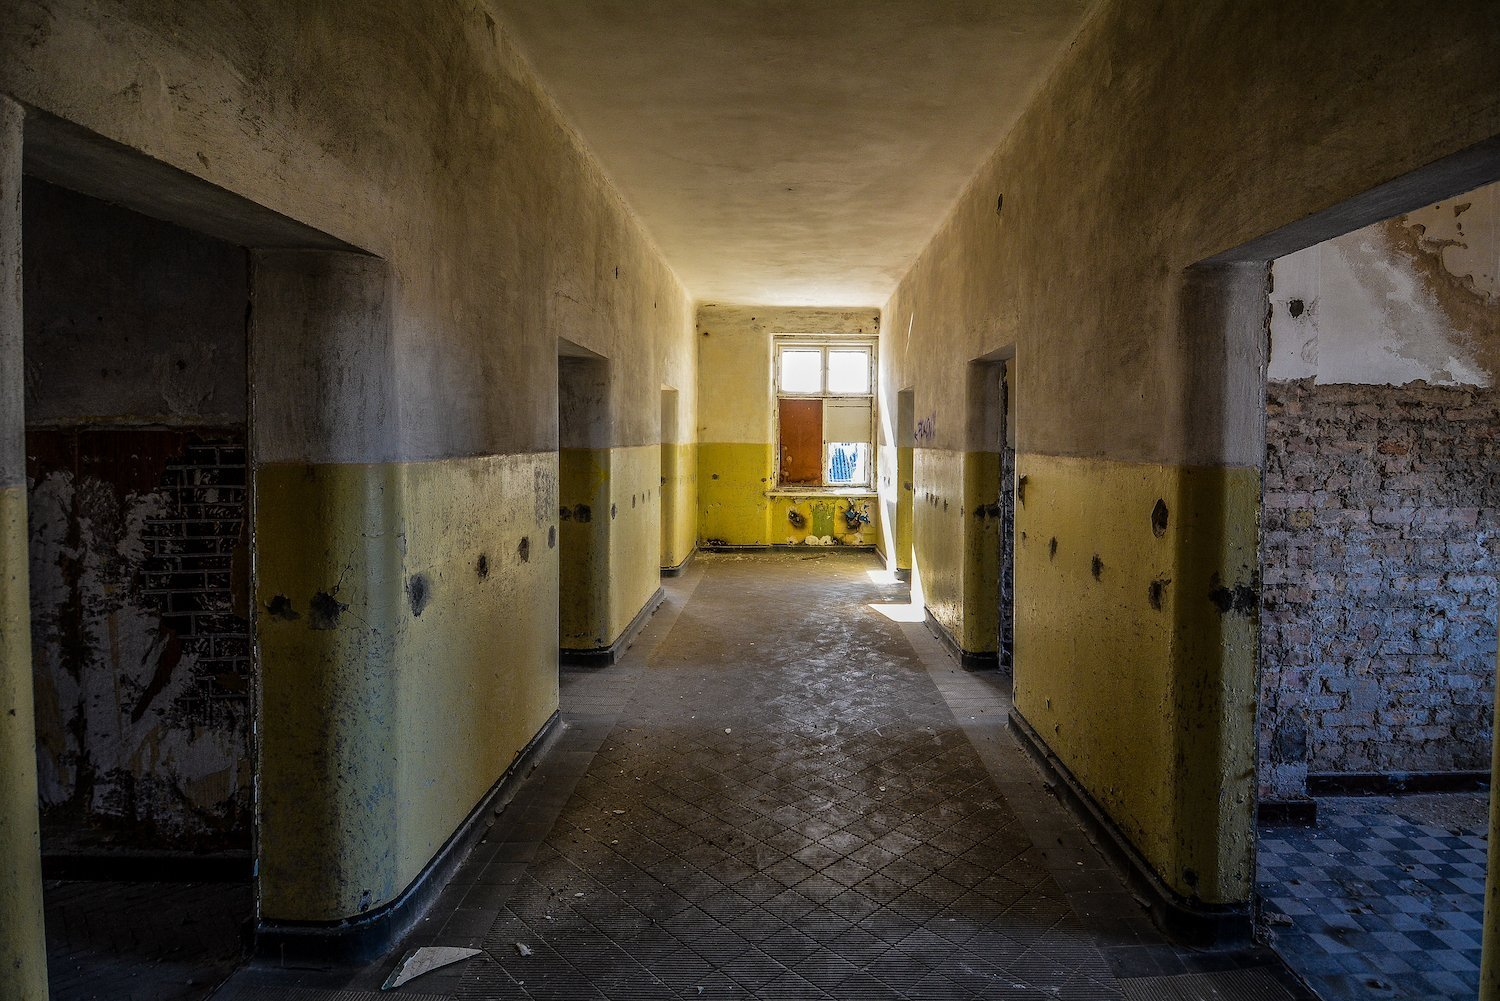 yellow grey hallway nazi soviet military base abandoned urbex urban exploring loewen adler kaserne elstal wustermark roter stern kaserne germany lost places